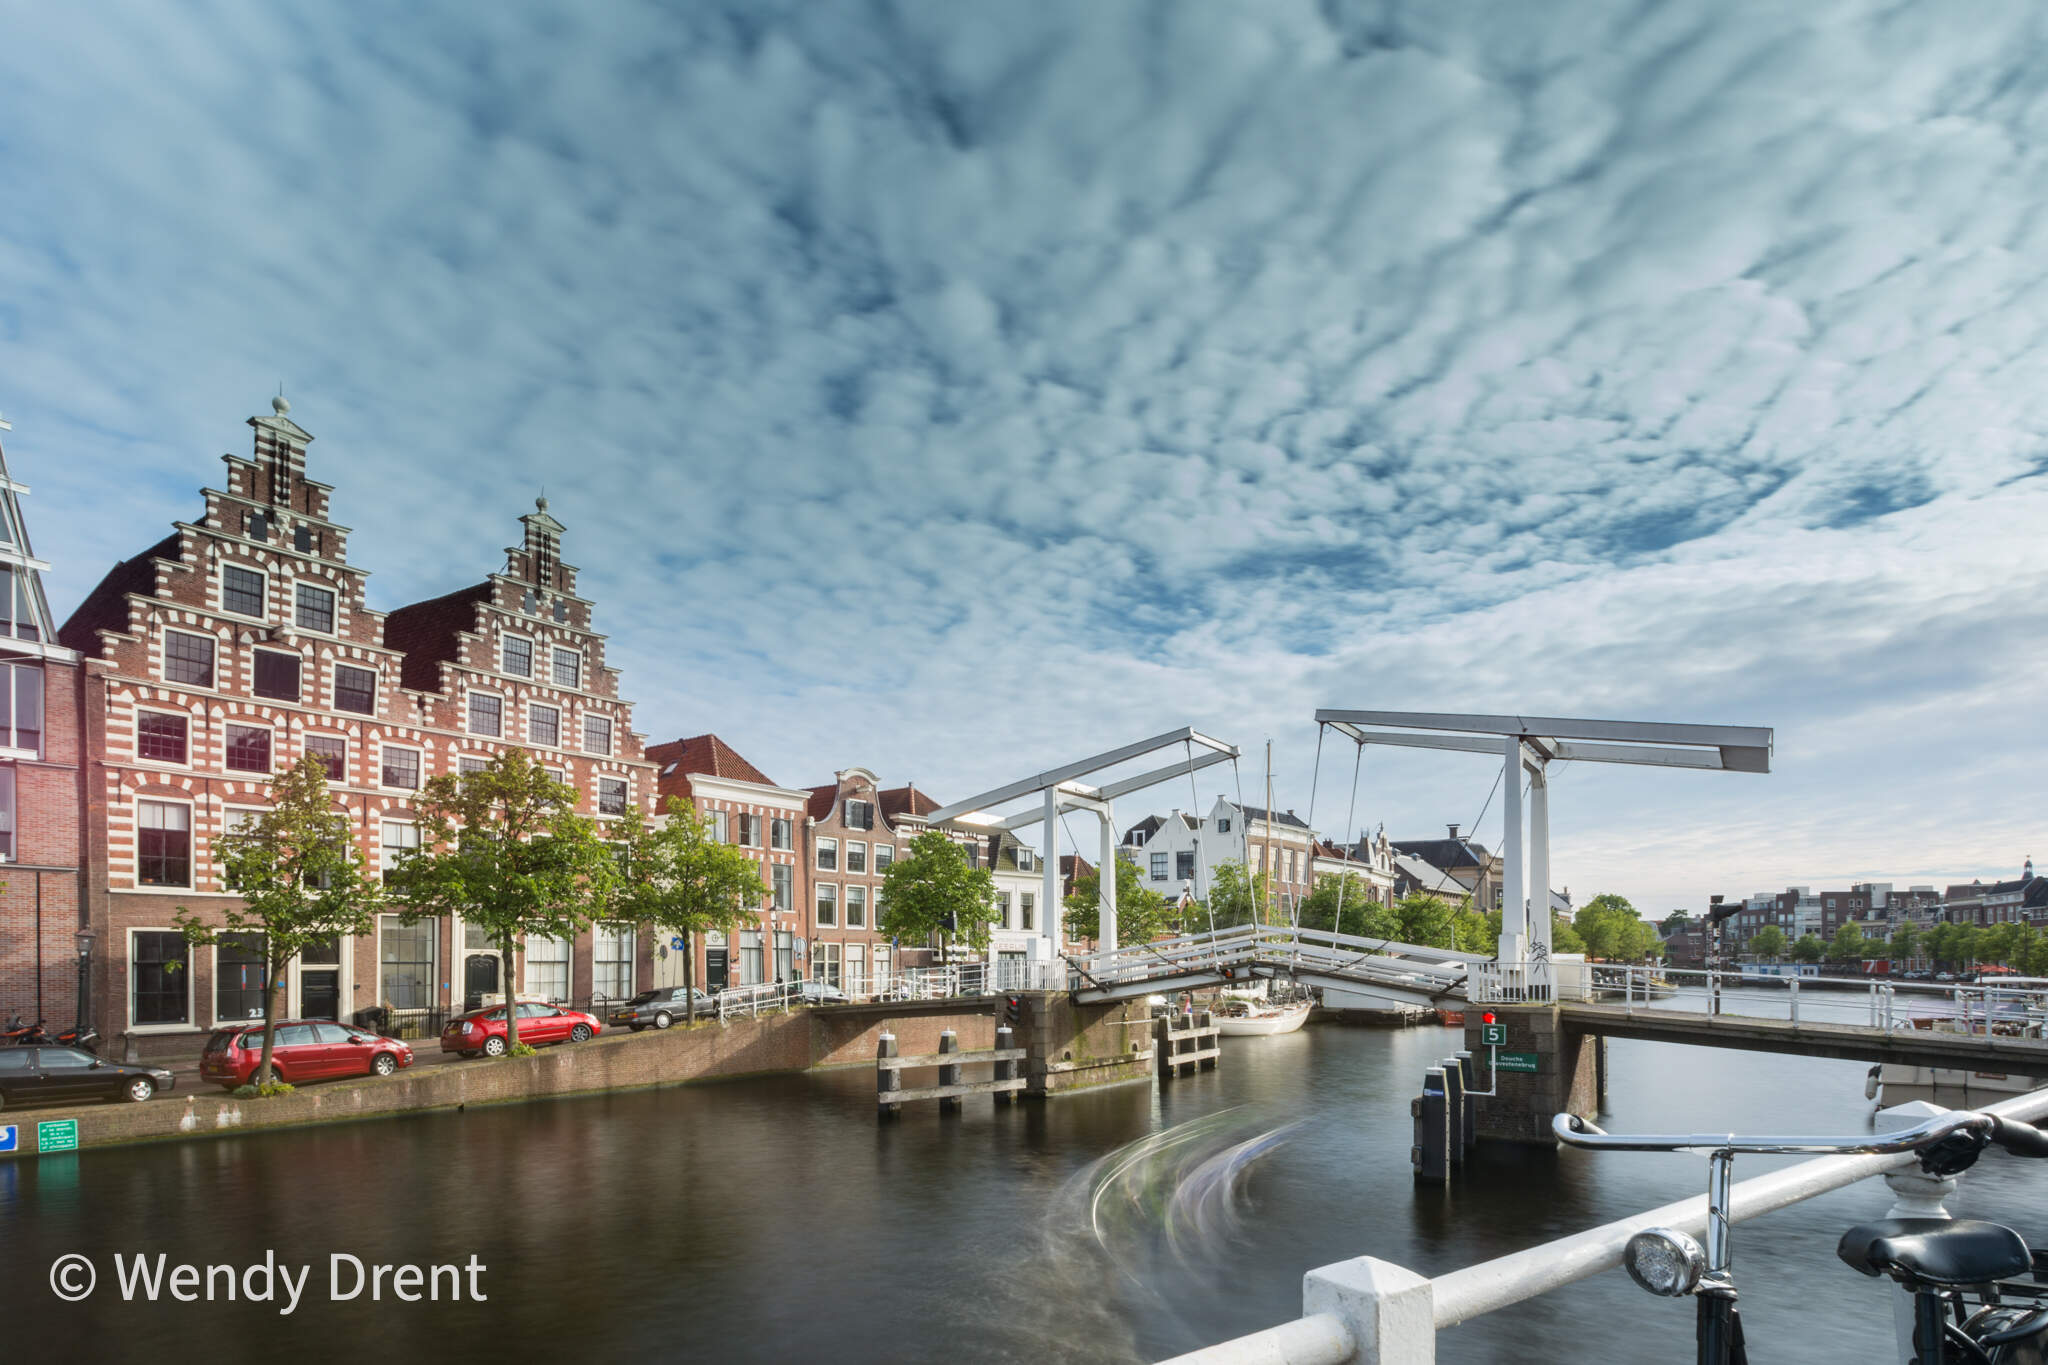 Haarlem, Gravestenenbrug, wendy drent, long exposure,  cityscape, dutch city, noord holland